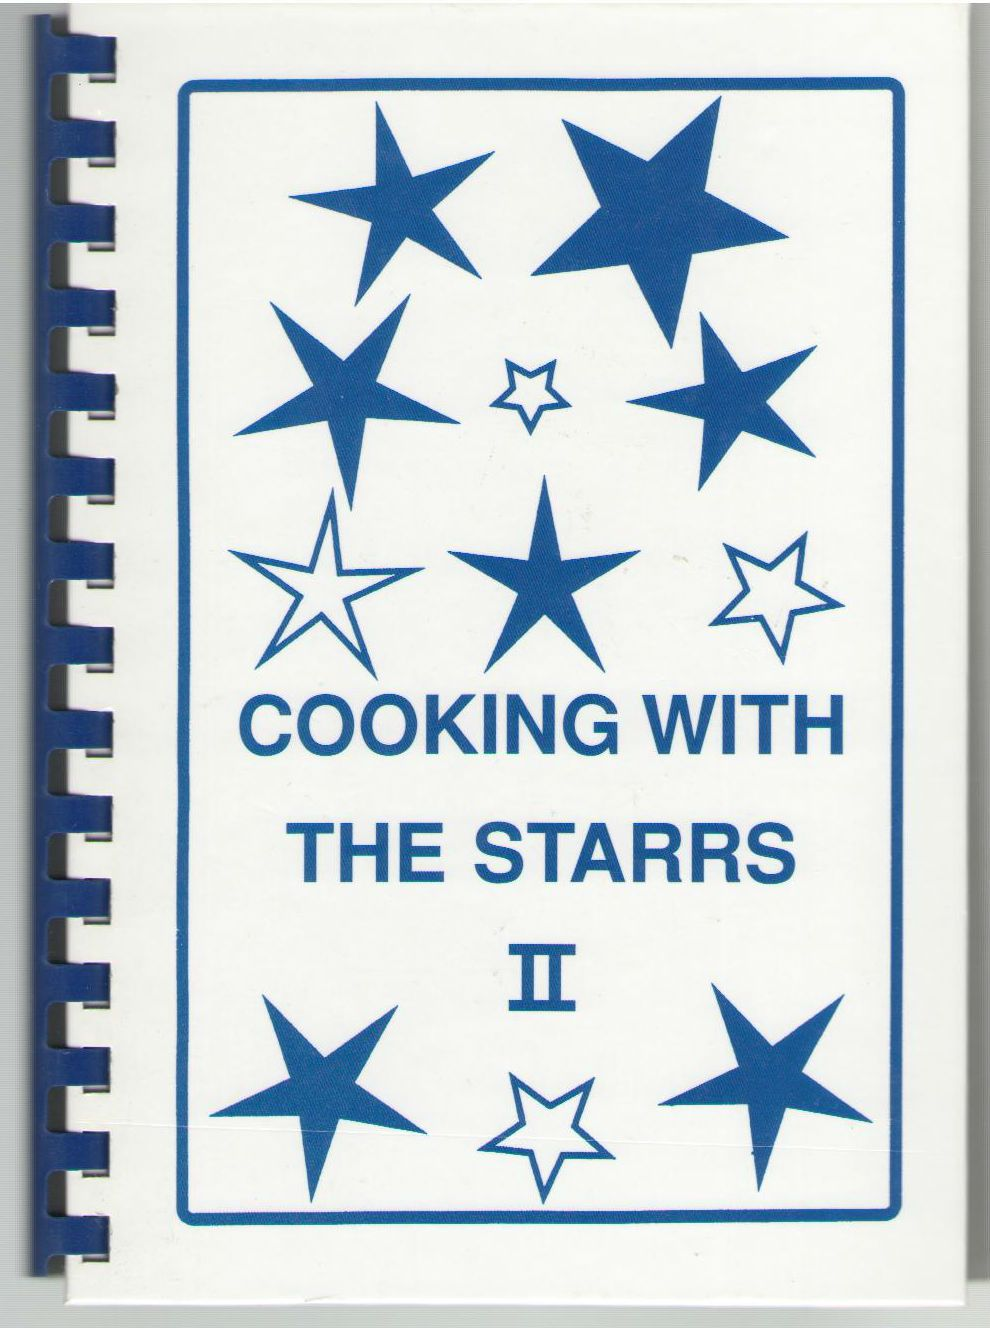 Cooking with the Starrs II, Mel Starr